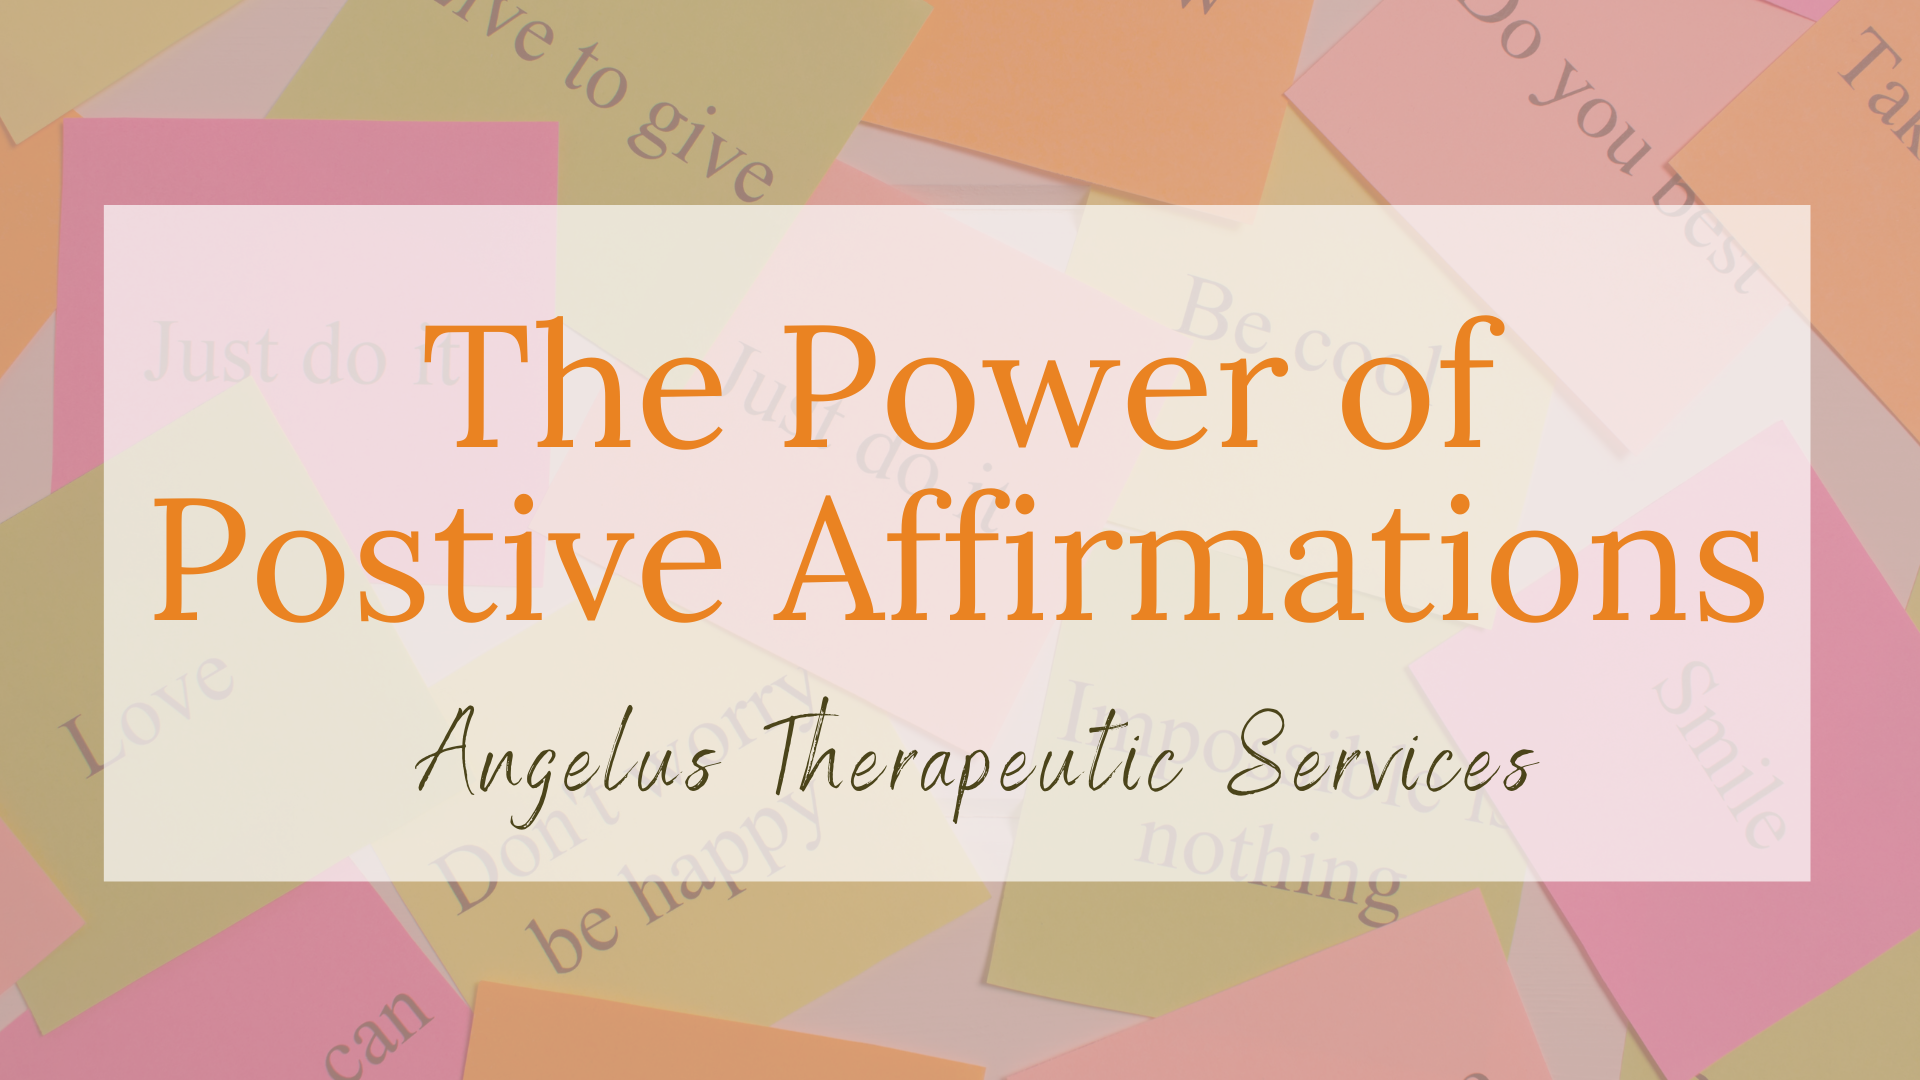 importance of affirmations for positive mental health